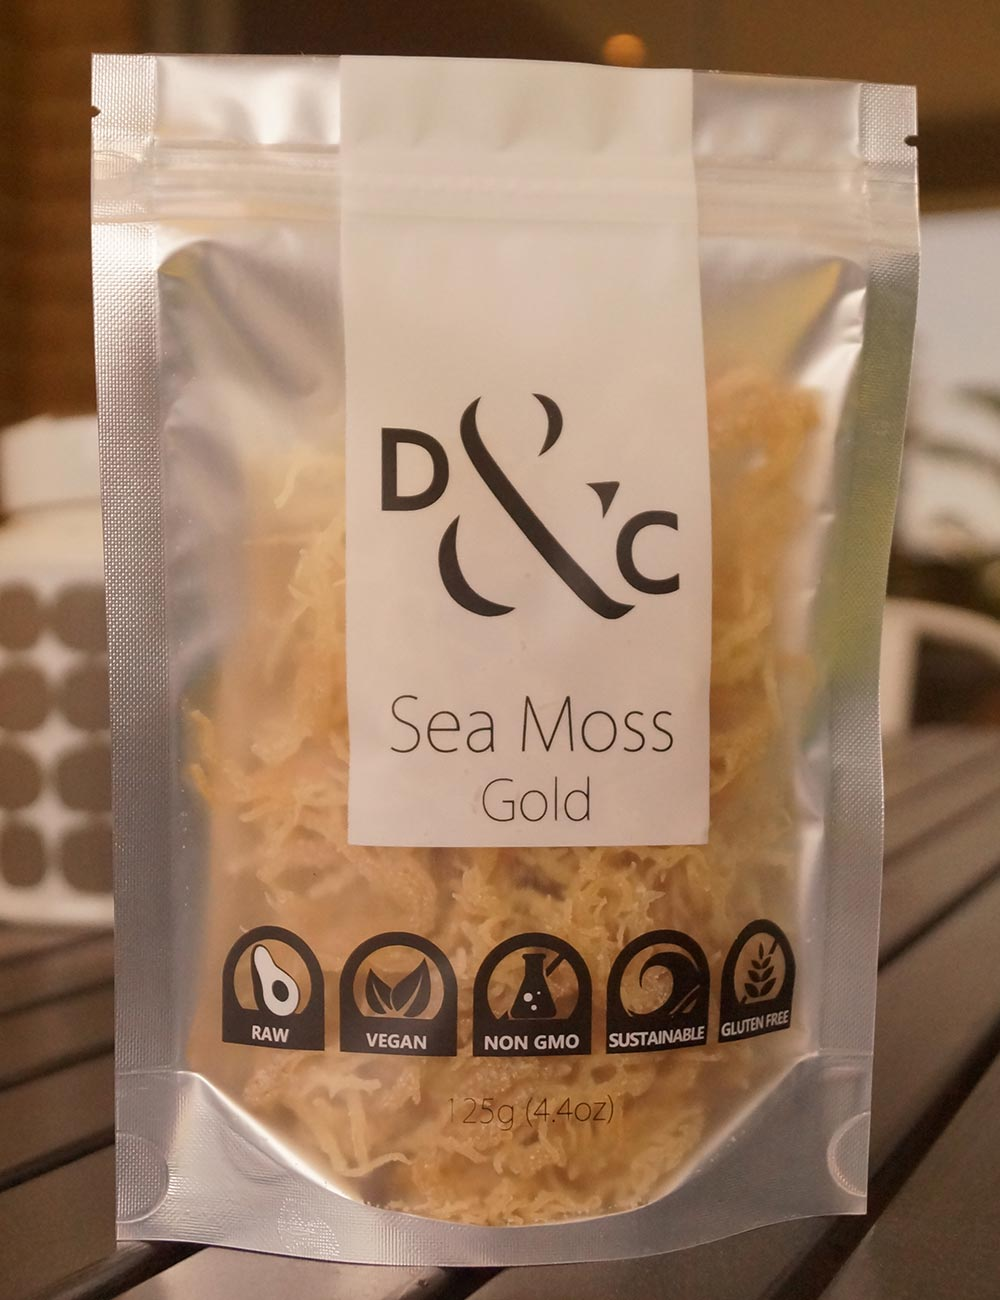 dried-sea-moss-gold-detox-and-cure-125g-bag-of-dry-sea-moss-outdoor-timber-table